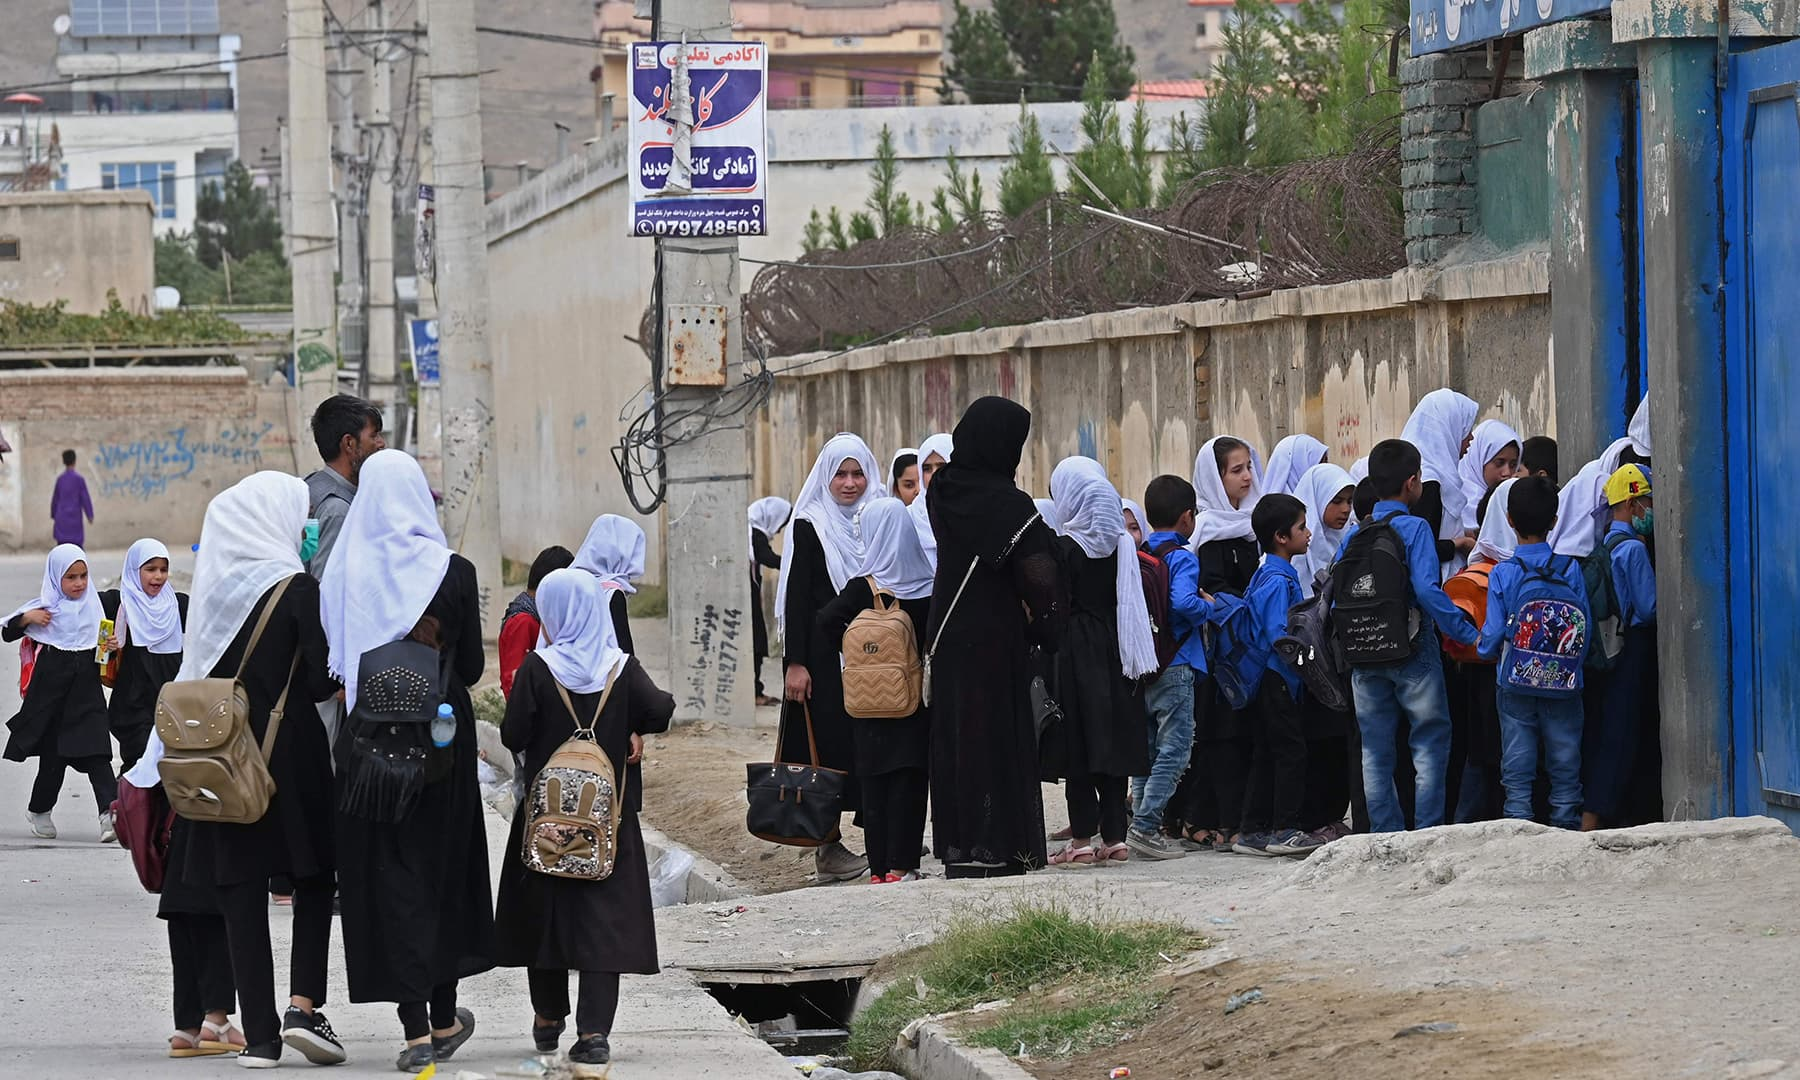 Students arrive to attend their morning classes at a government middle school in Kabul on August 30. — AFP